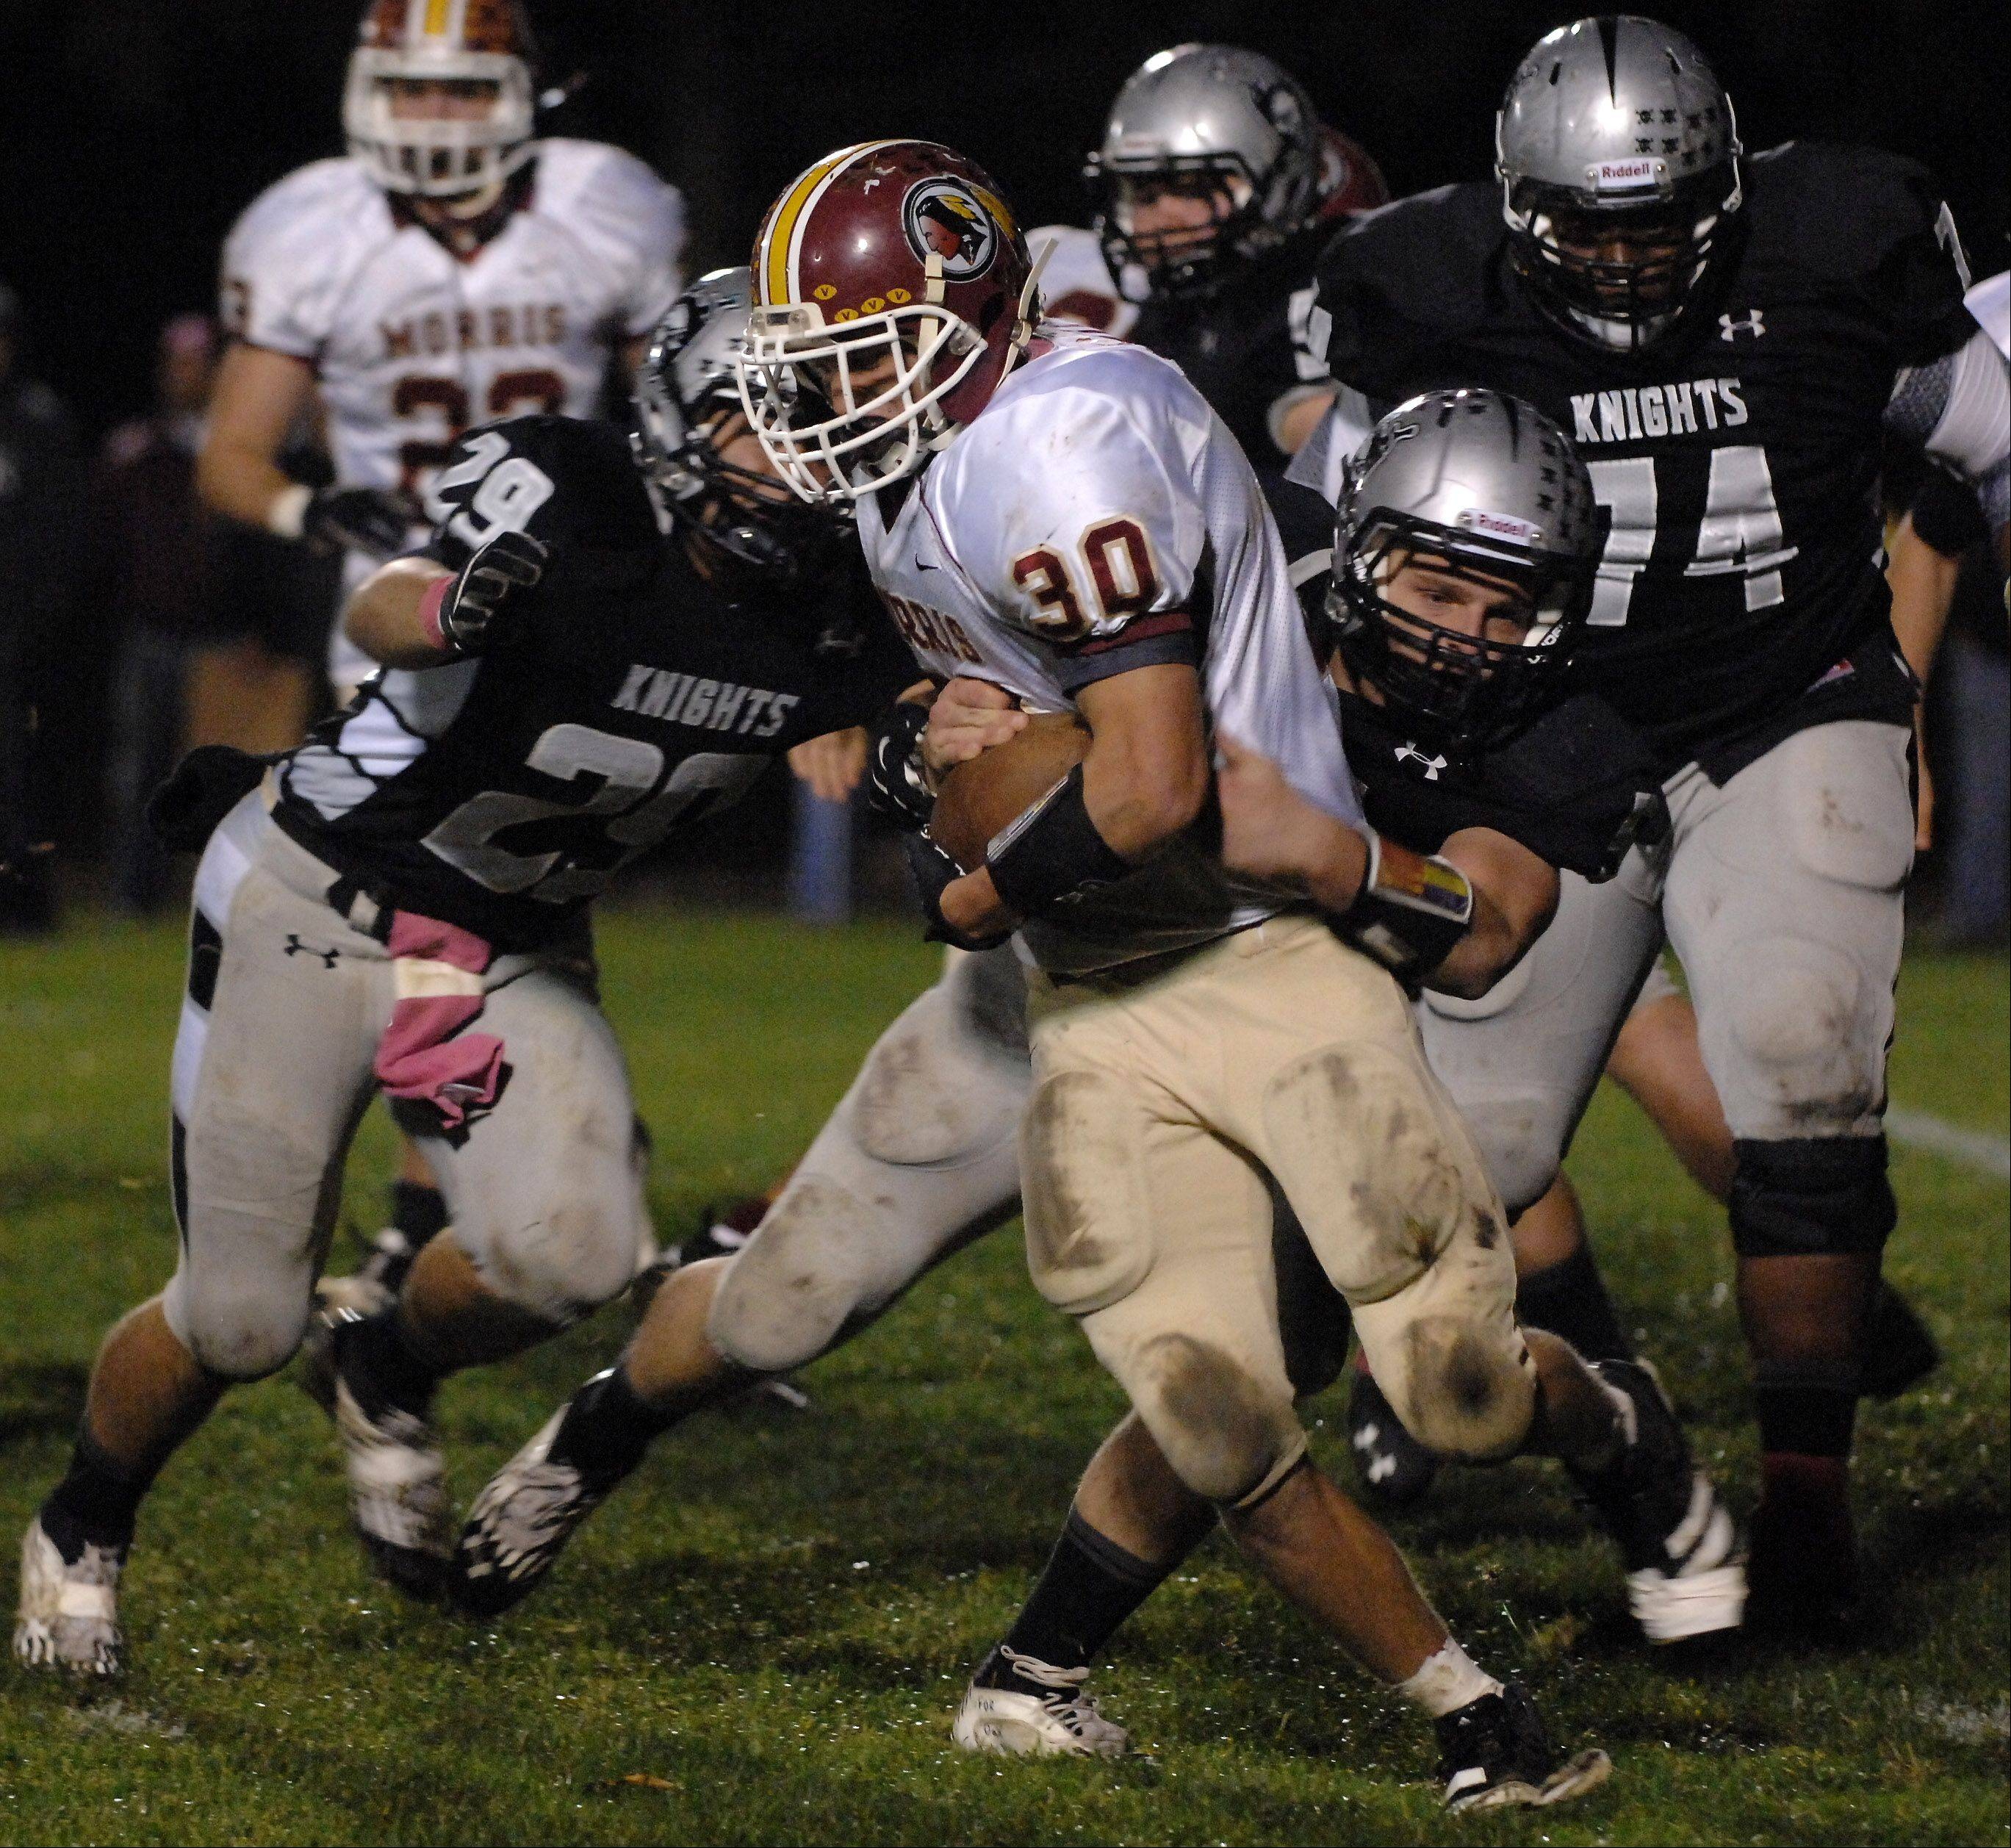 Kaneland's Ryan Lawrence, left, and Gary Koehring, right, bring down Morris' Reese Sobol during Friday's game in Maple Park.